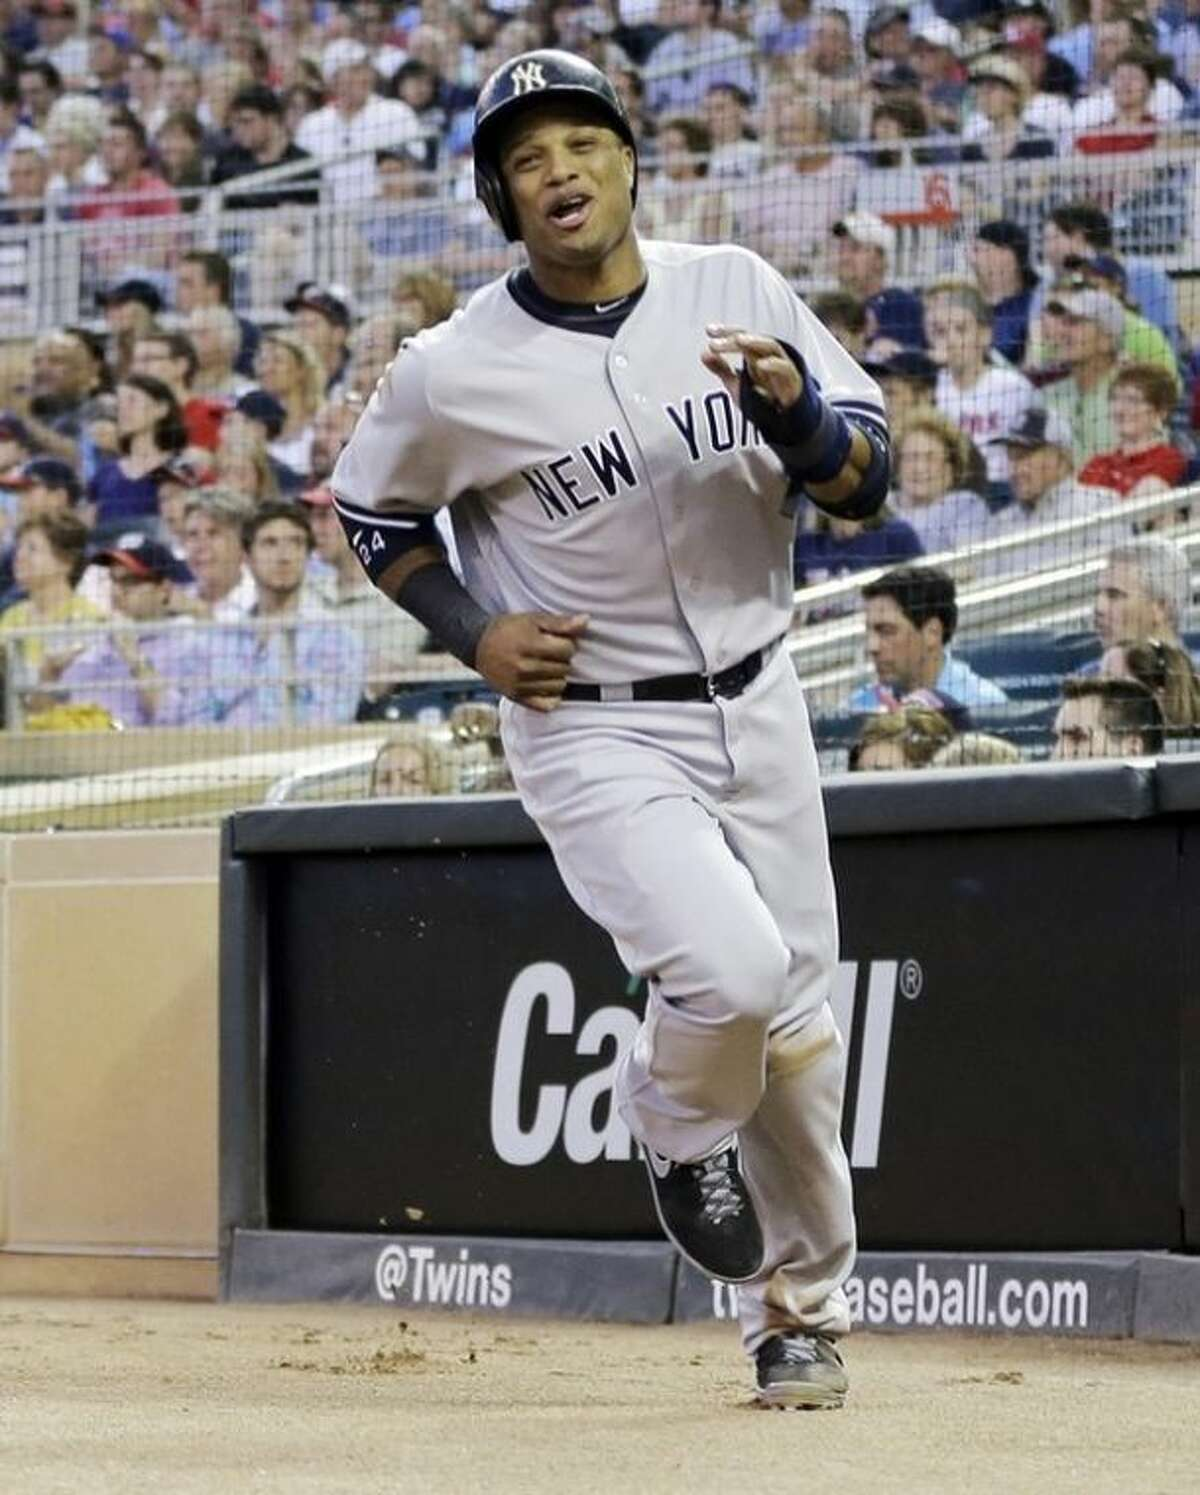 New York Yankees' Robinson Cano races to the dugout after scoring the go-ahead run on a sacrifice fly by Lyle Overbay off Minnesota Twins pitcher Caleb Thielbar in the sixth inning of a baseball game on Wednesday, July 3, 2013, in Minneapolis. (AP Photo/Jim Mone)